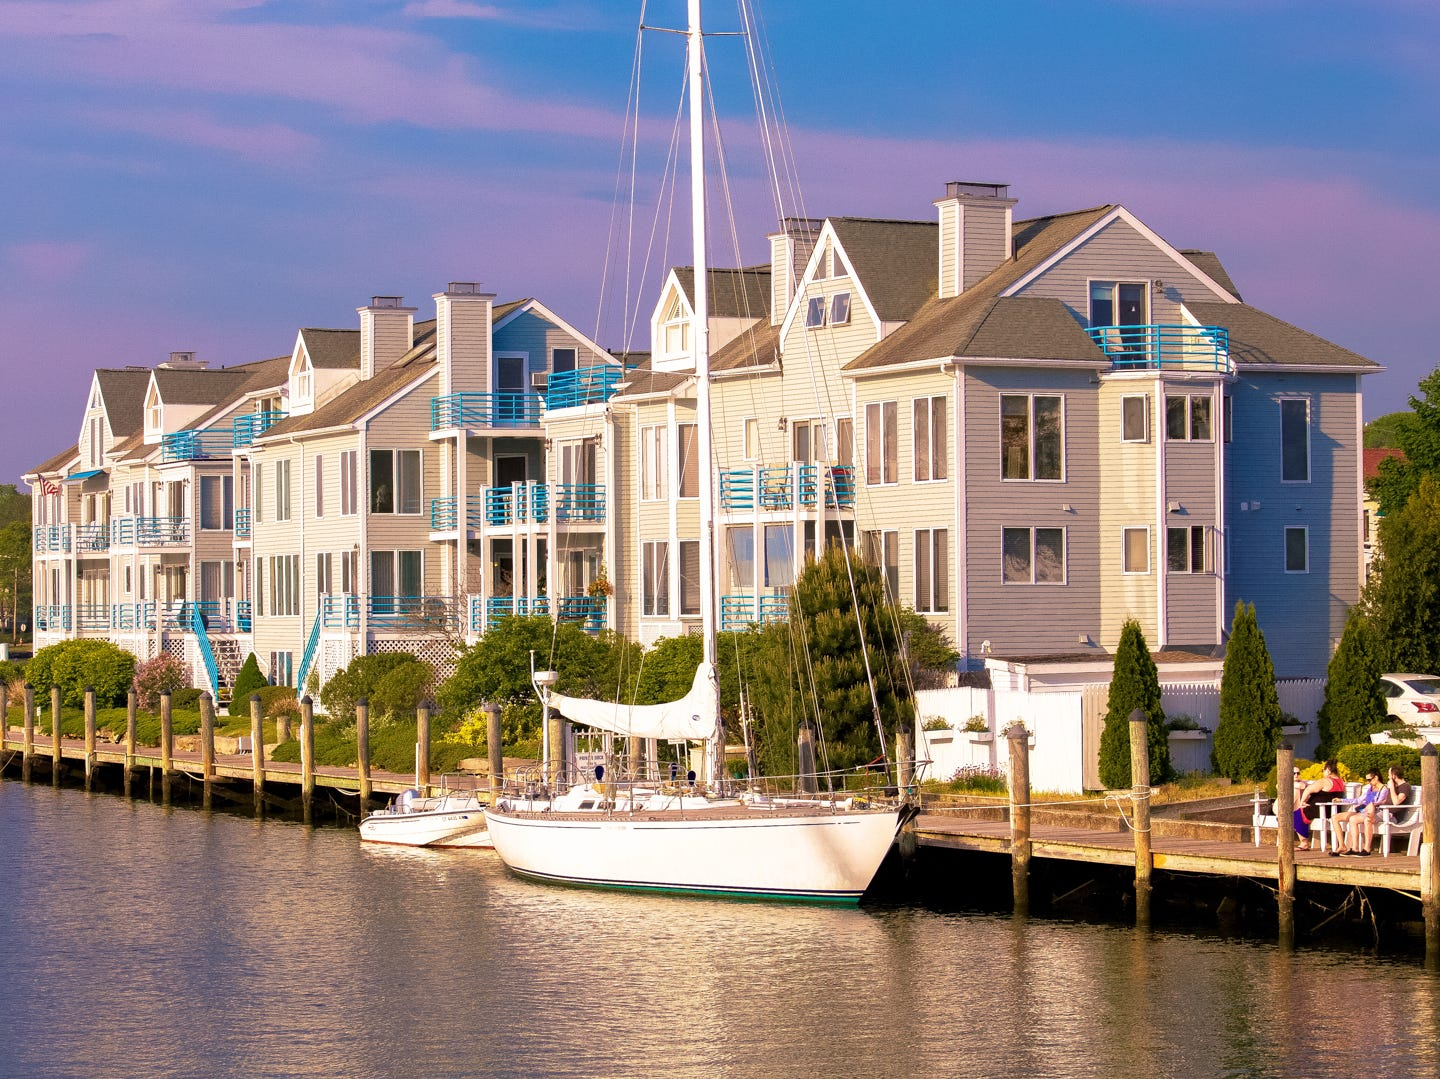 Connecticut: The shoreline town of Mystic is best known for its iconic Bascule Bridge and its overall New England charm. Shop at the colorful mom and pop shops, visit the Mystic Museum of Art or a local gallery, snack on cider and fresh doughnuts at B.F. Clyde's Cider Mill, or gaze at the sea creatures at the Mystic Aquarium. There are also plenty of nature trails around if hiking and biking make for your ideal weekend. Mystic Aquarium: $37.99.